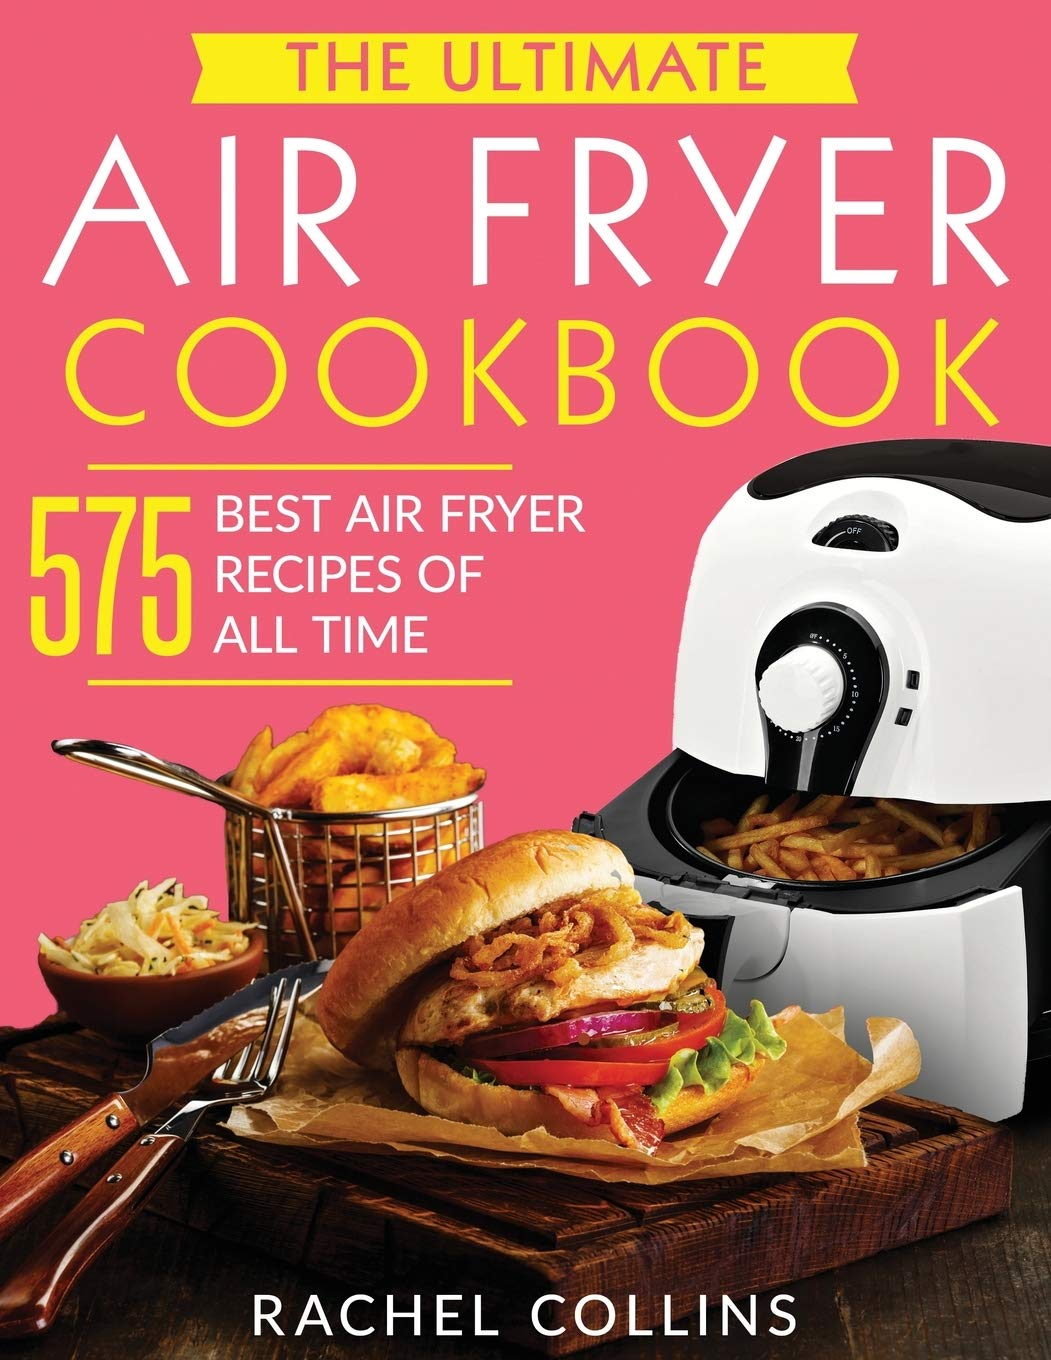 The Ultimate Air Fryer Cookbook by Rachel Collins